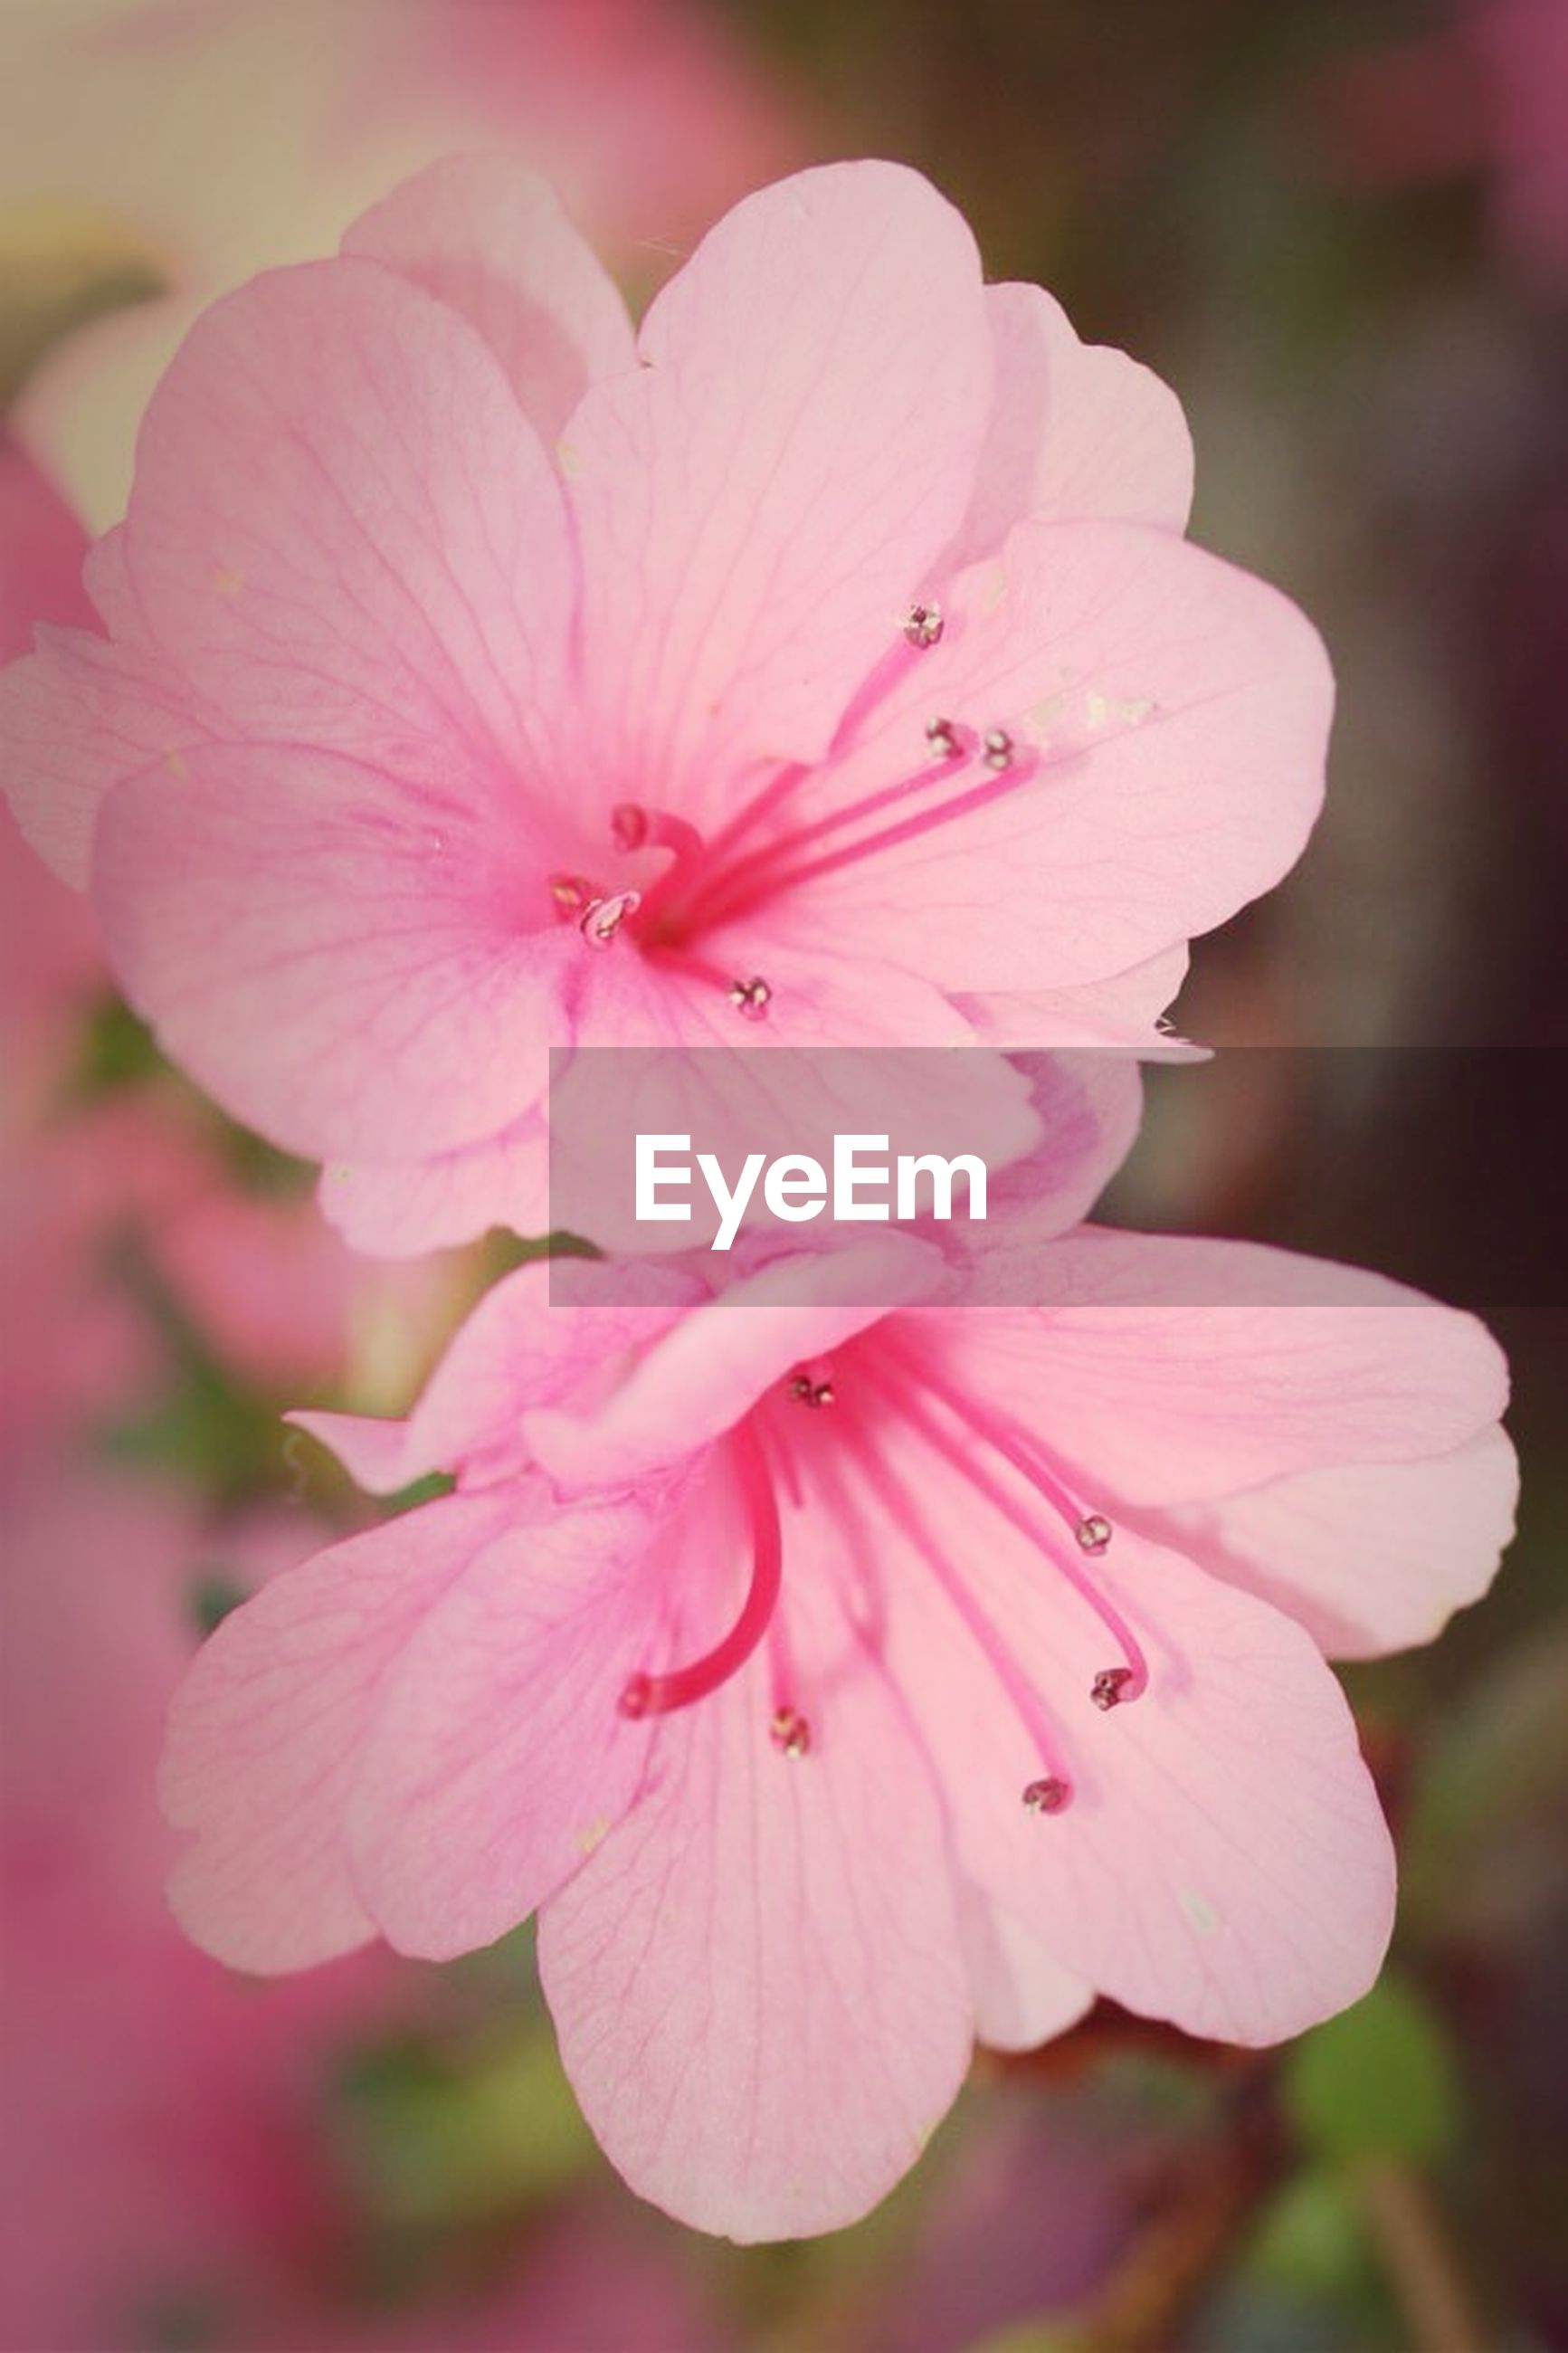 flower, petal, freshness, fragility, flower head, pink color, close-up, growth, beauty in nature, focus on foreground, stamen, nature, blooming, pollen, in bloom, blossom, pink, day, outdoors, plant